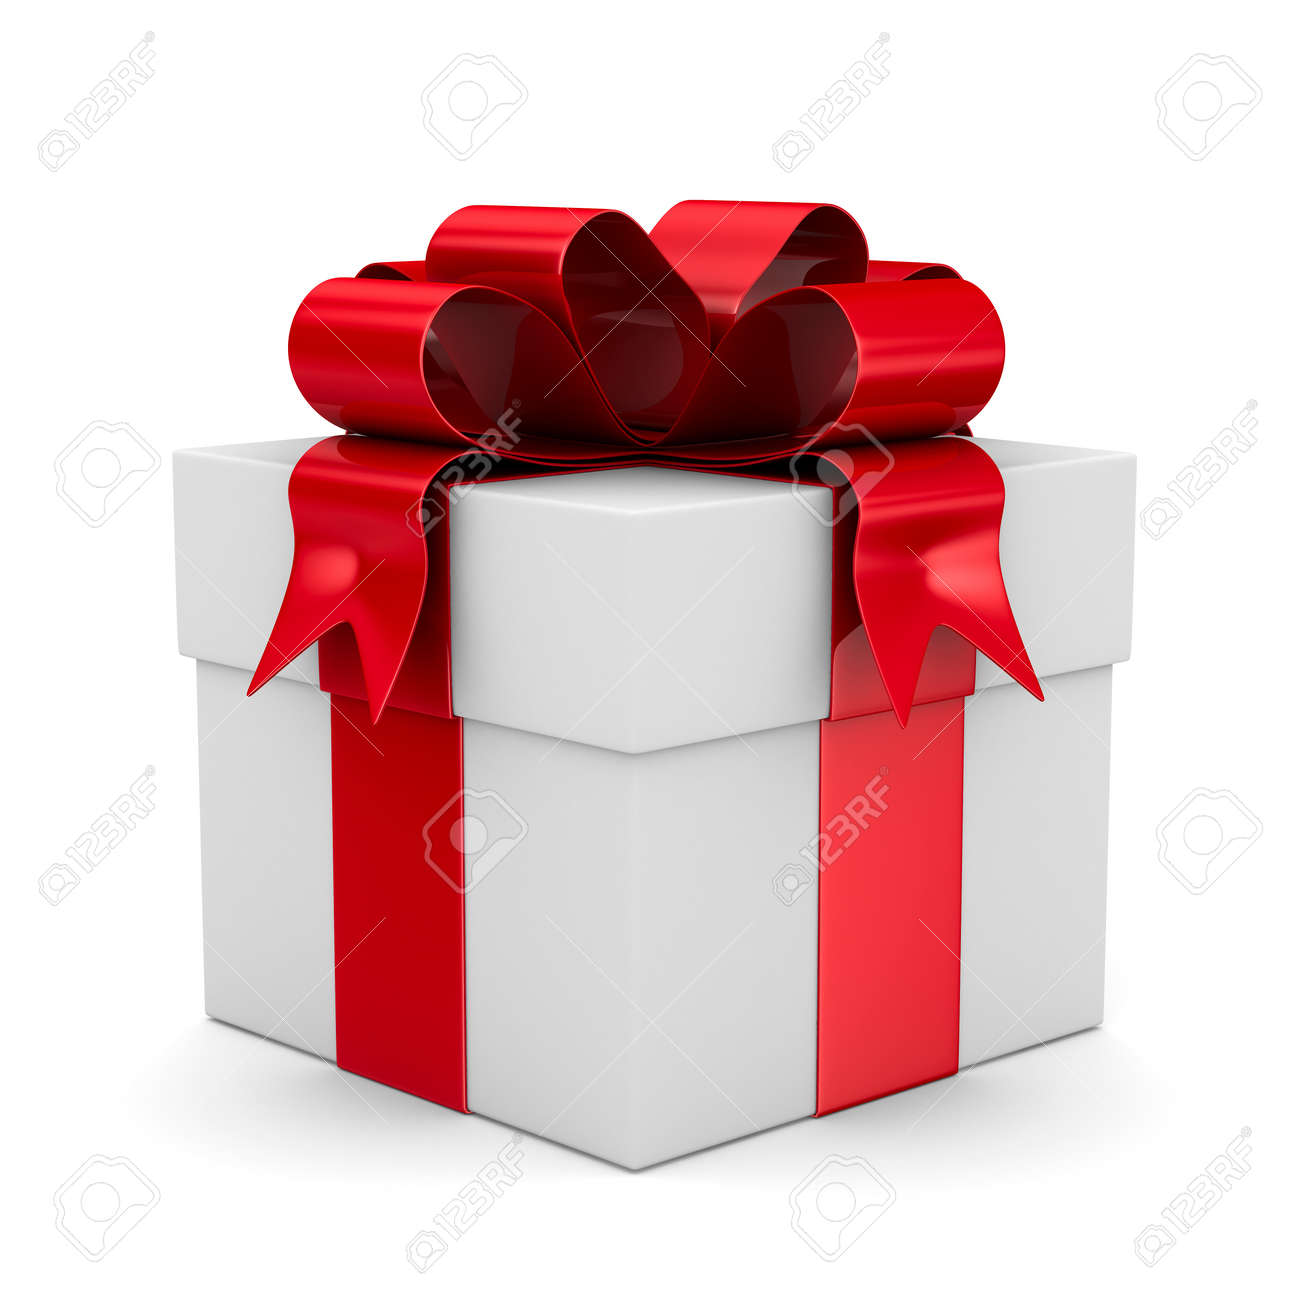 White gift box. Isolated 3D image Stock Photo - 10532176